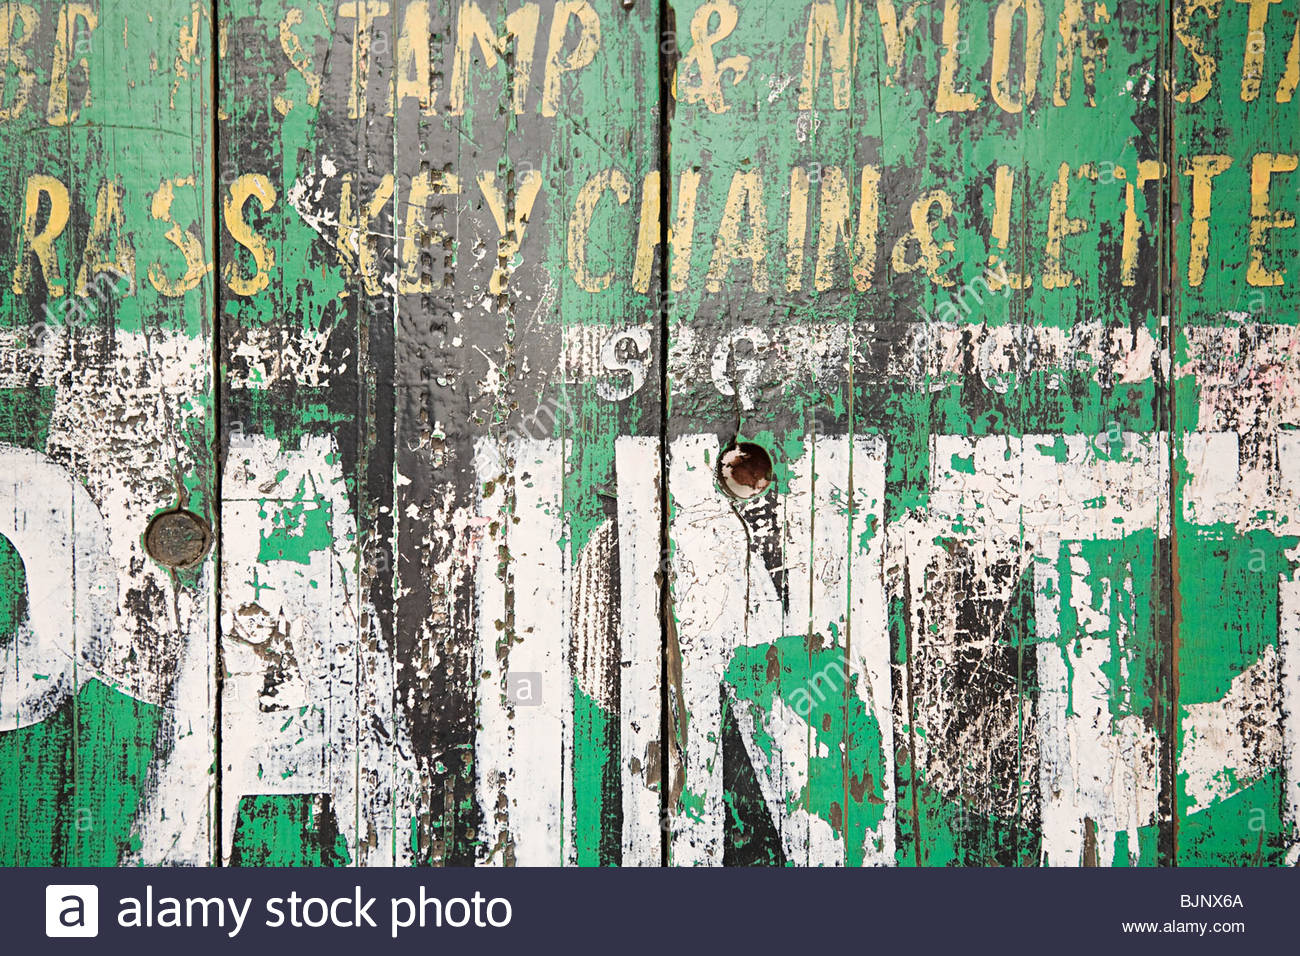 Worn paint on a gate - Stock Image